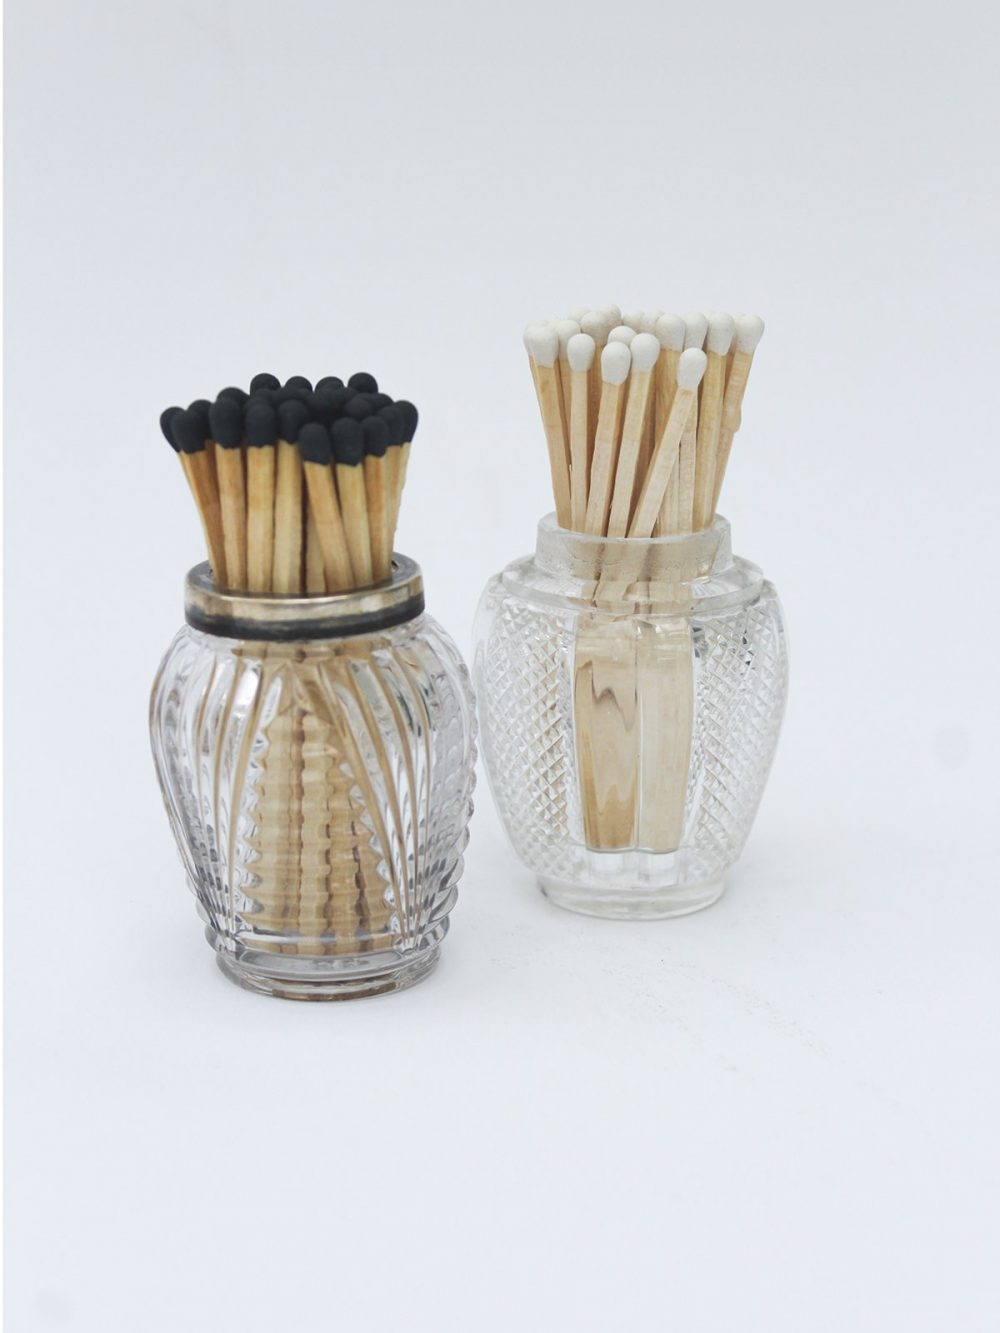 Tall Black or white Tip matches in Vintage Pots